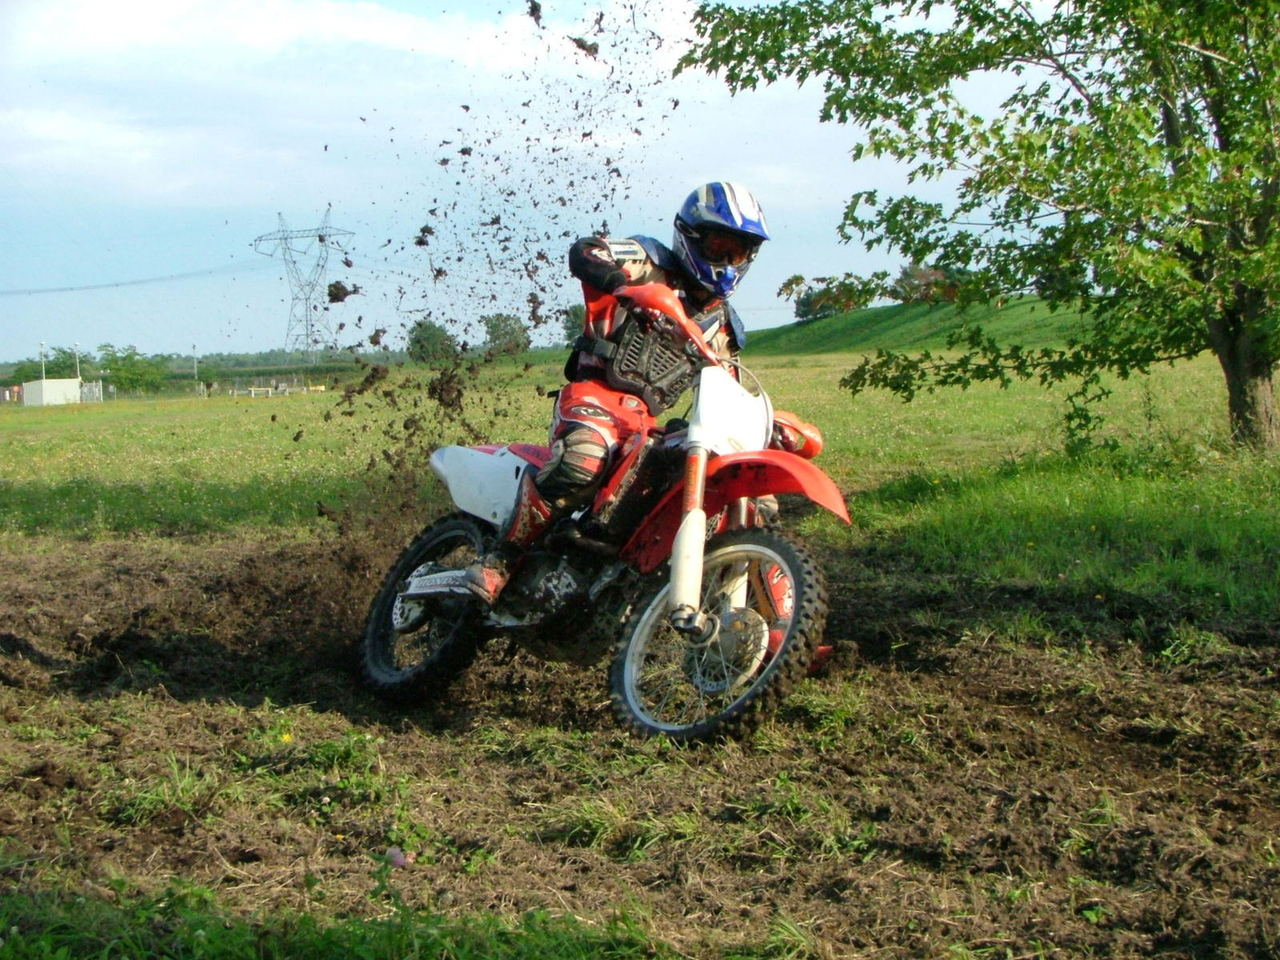 What Dirt Bike Should I Get? (5 Things To Know)